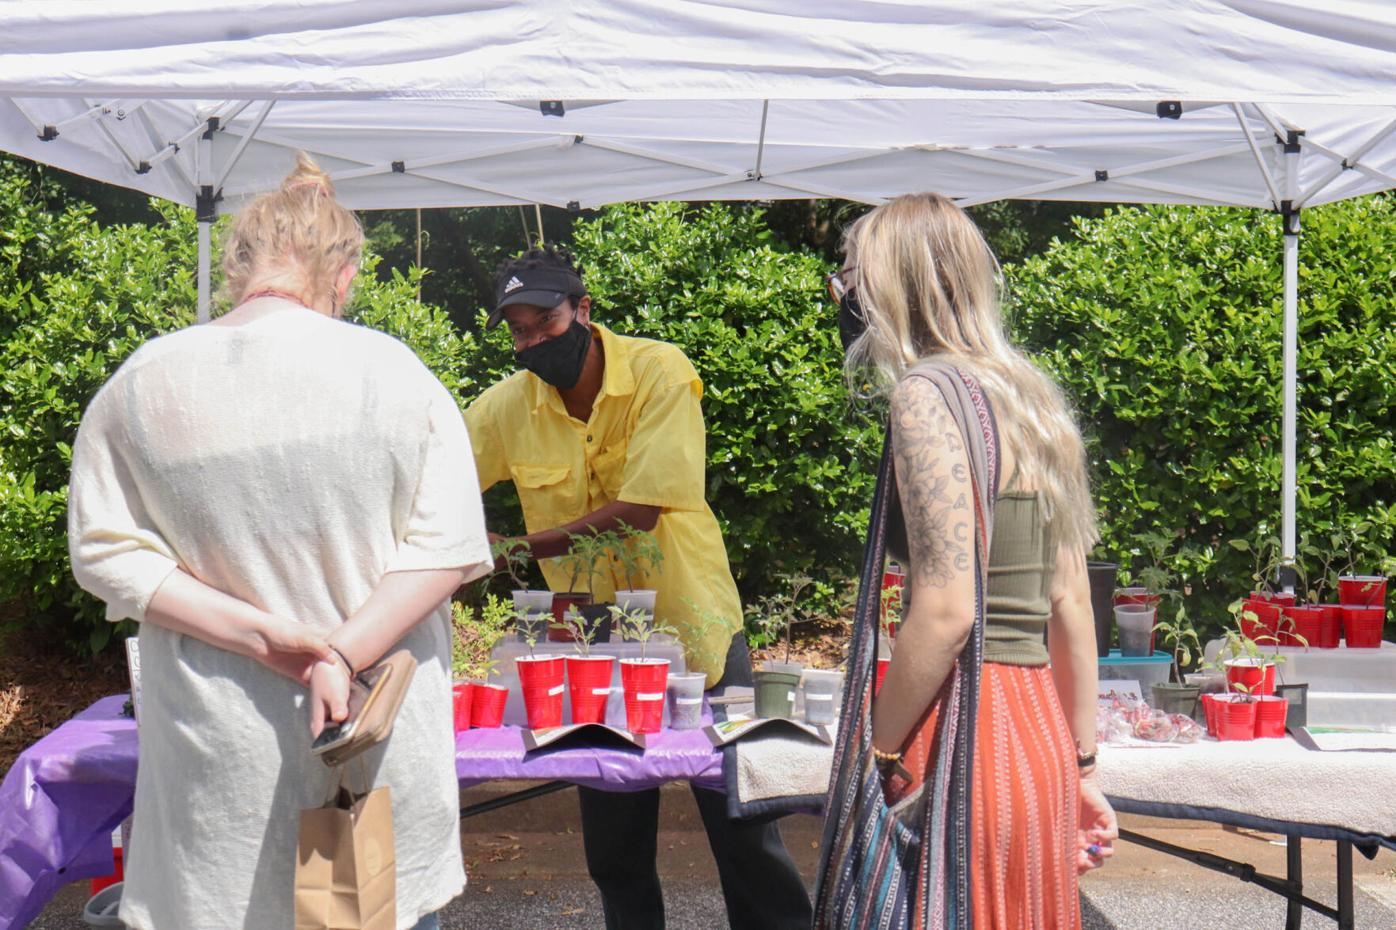 PHOTOS: Athens' West Broad Farmers Market celebrates May Day